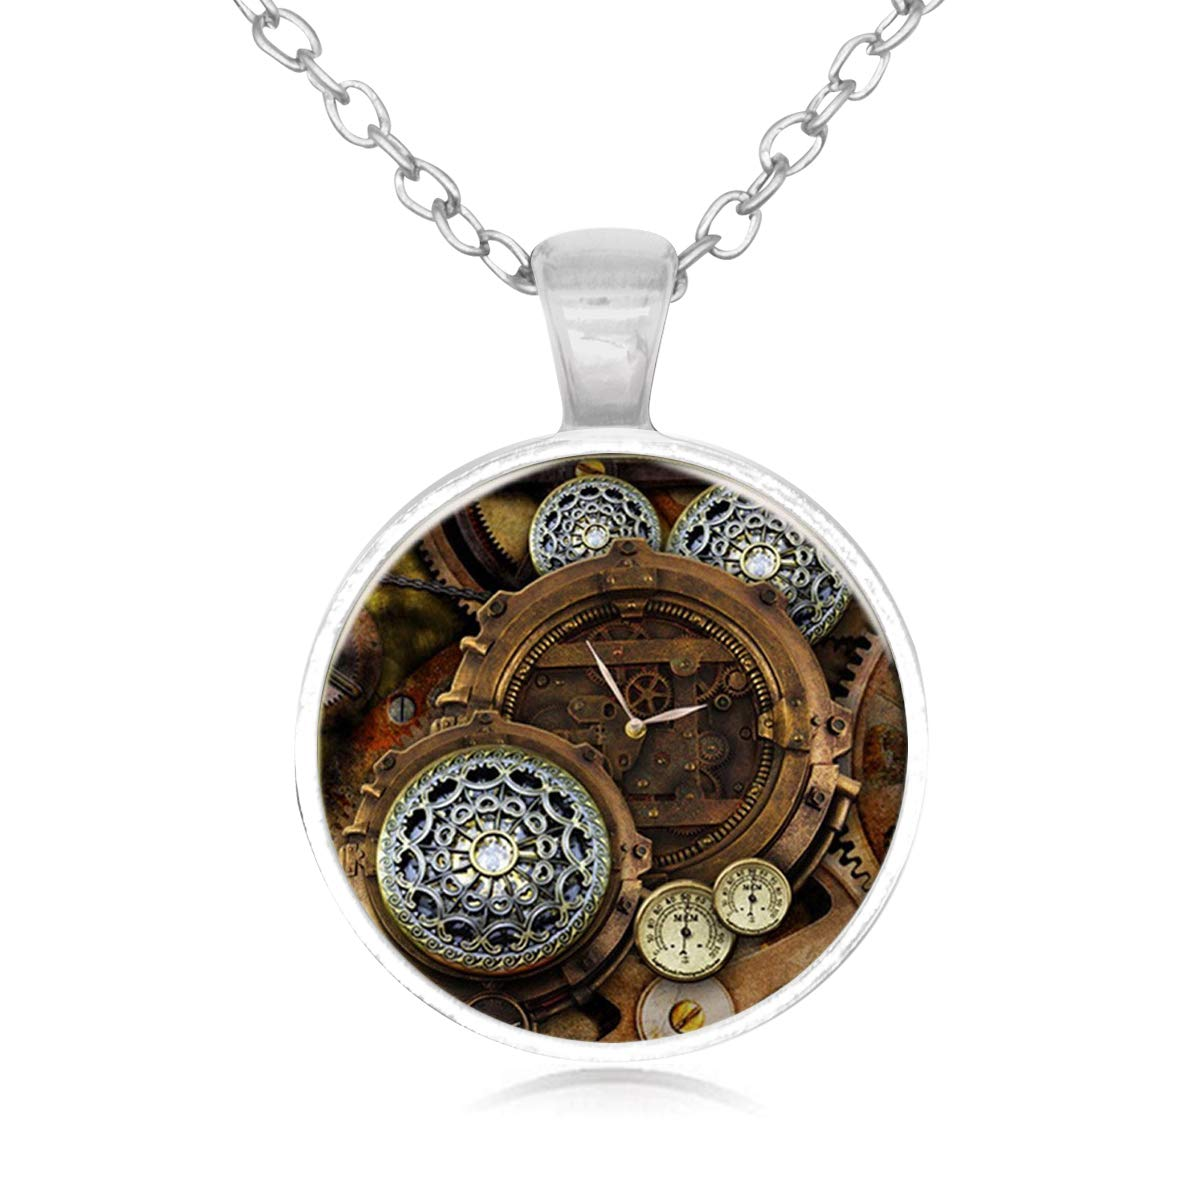 Lightrain Steampunk Gears Clock Pendant Necklace Vintage Bronze Chain Statement Necklace Handmade Jewelry Gifts